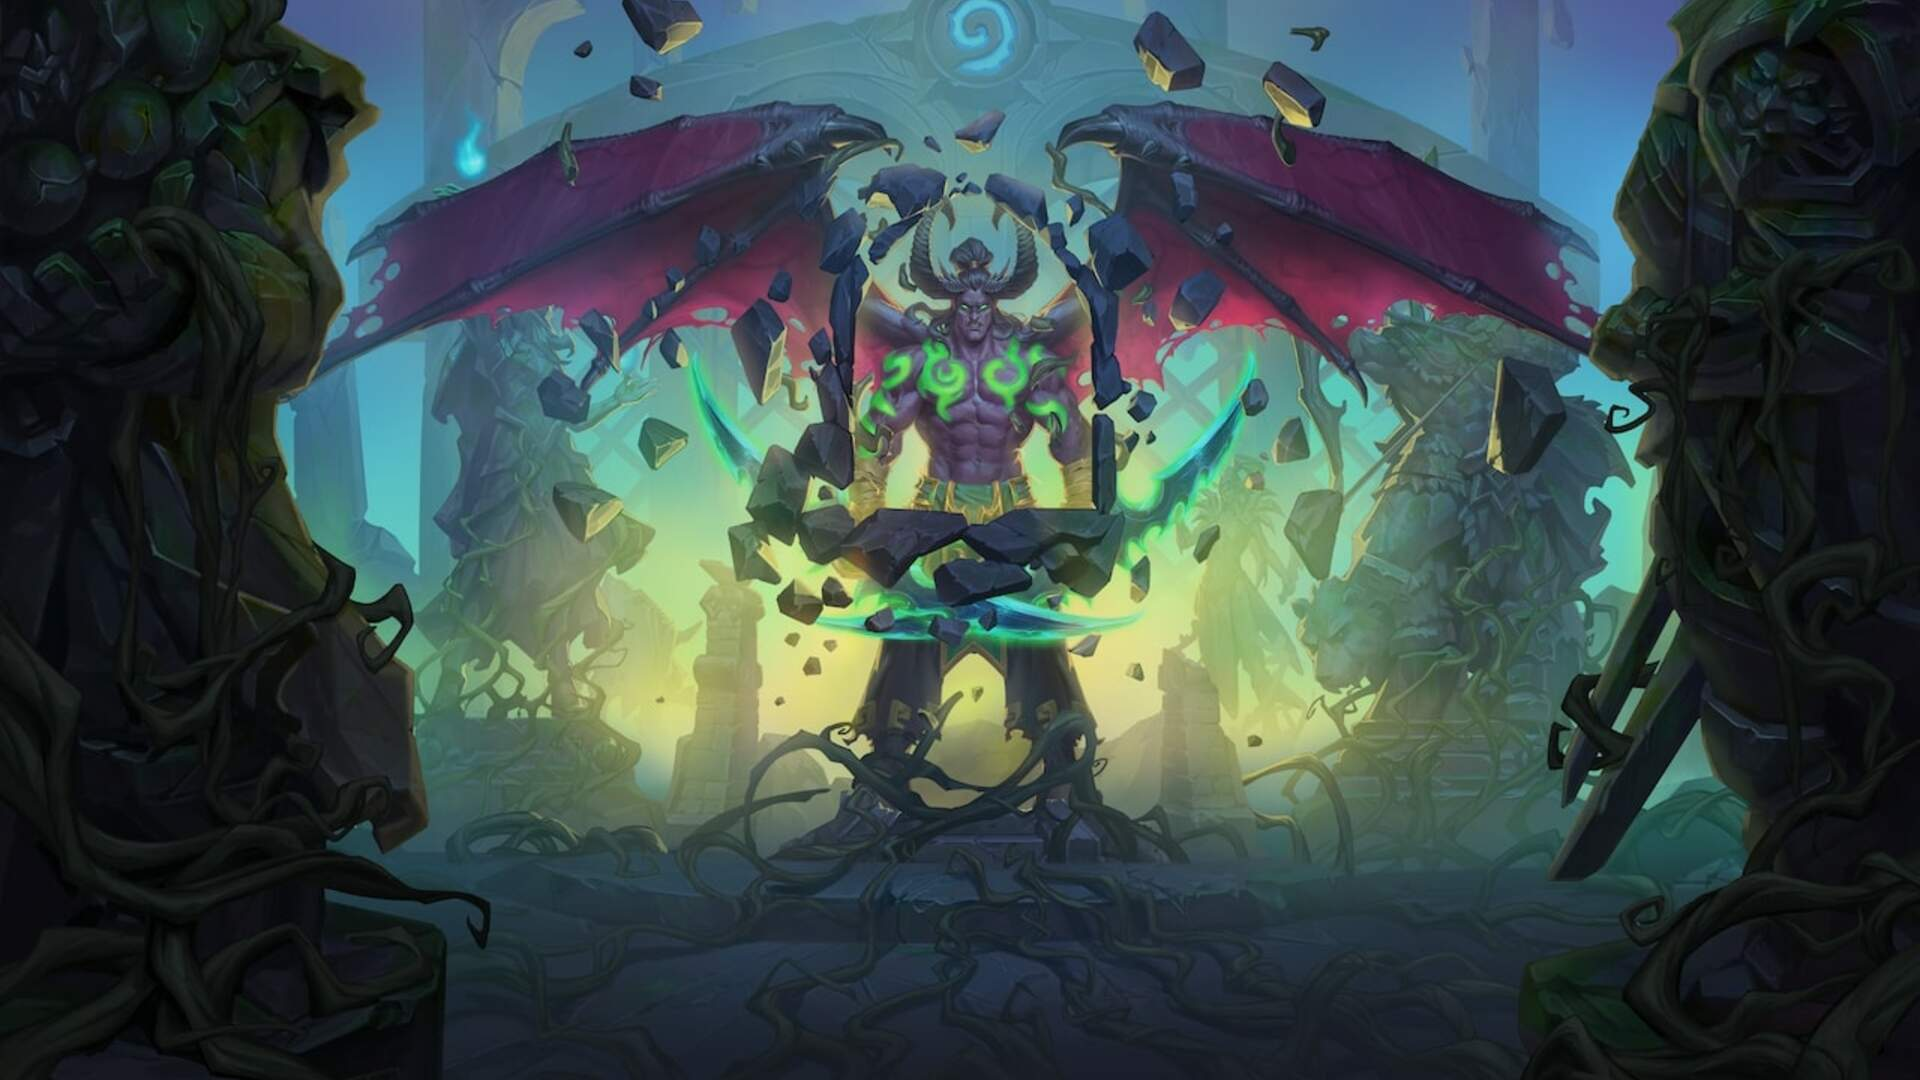 Hearthstone: Ashes of Outland - What's New in the Latest Expansion?